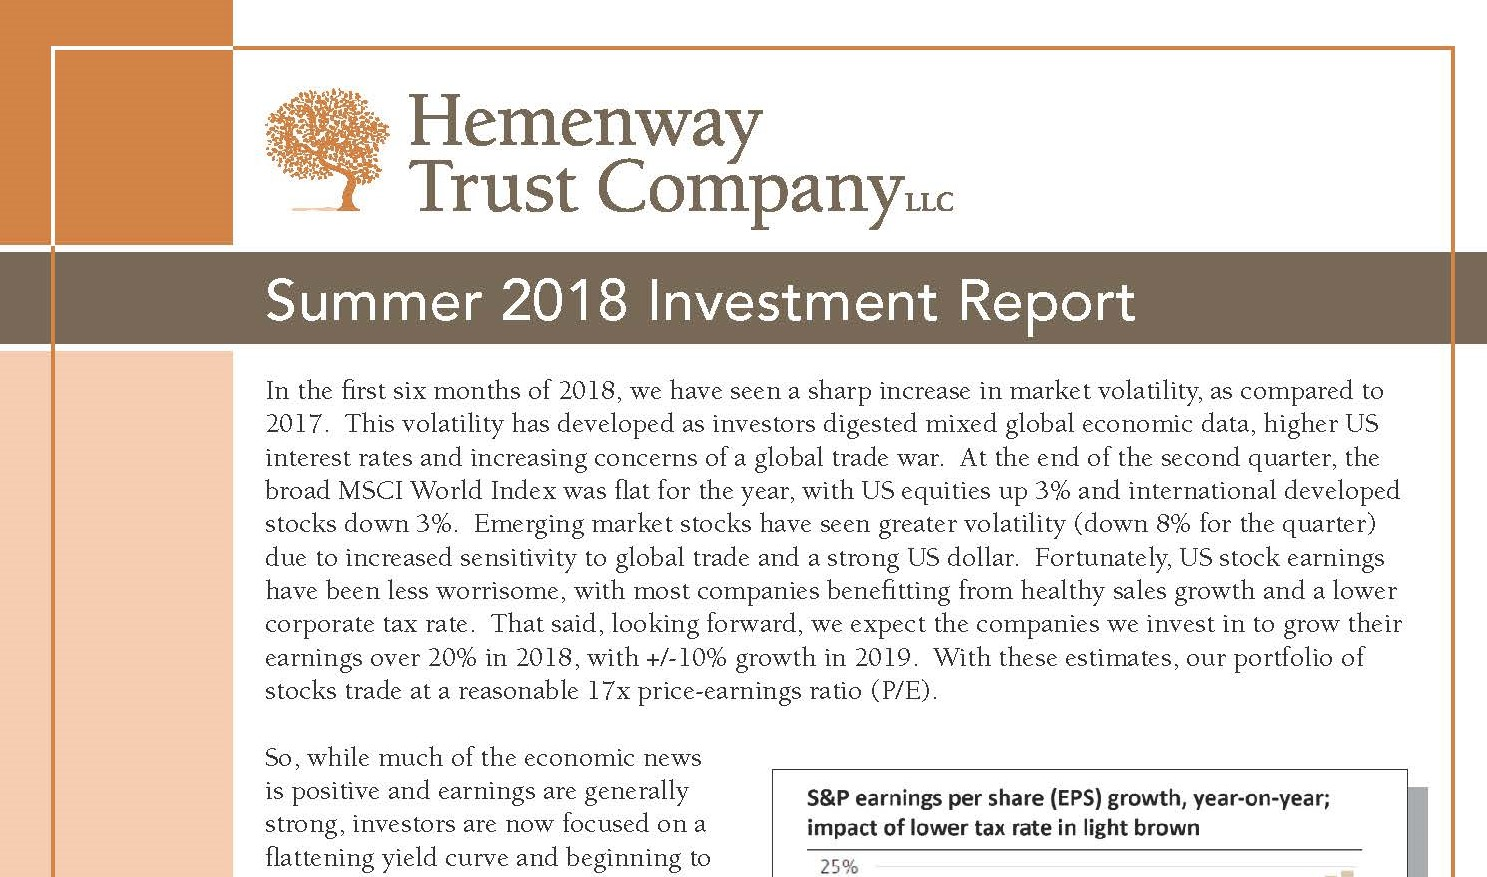 HTC Summer 2018 Investment Report